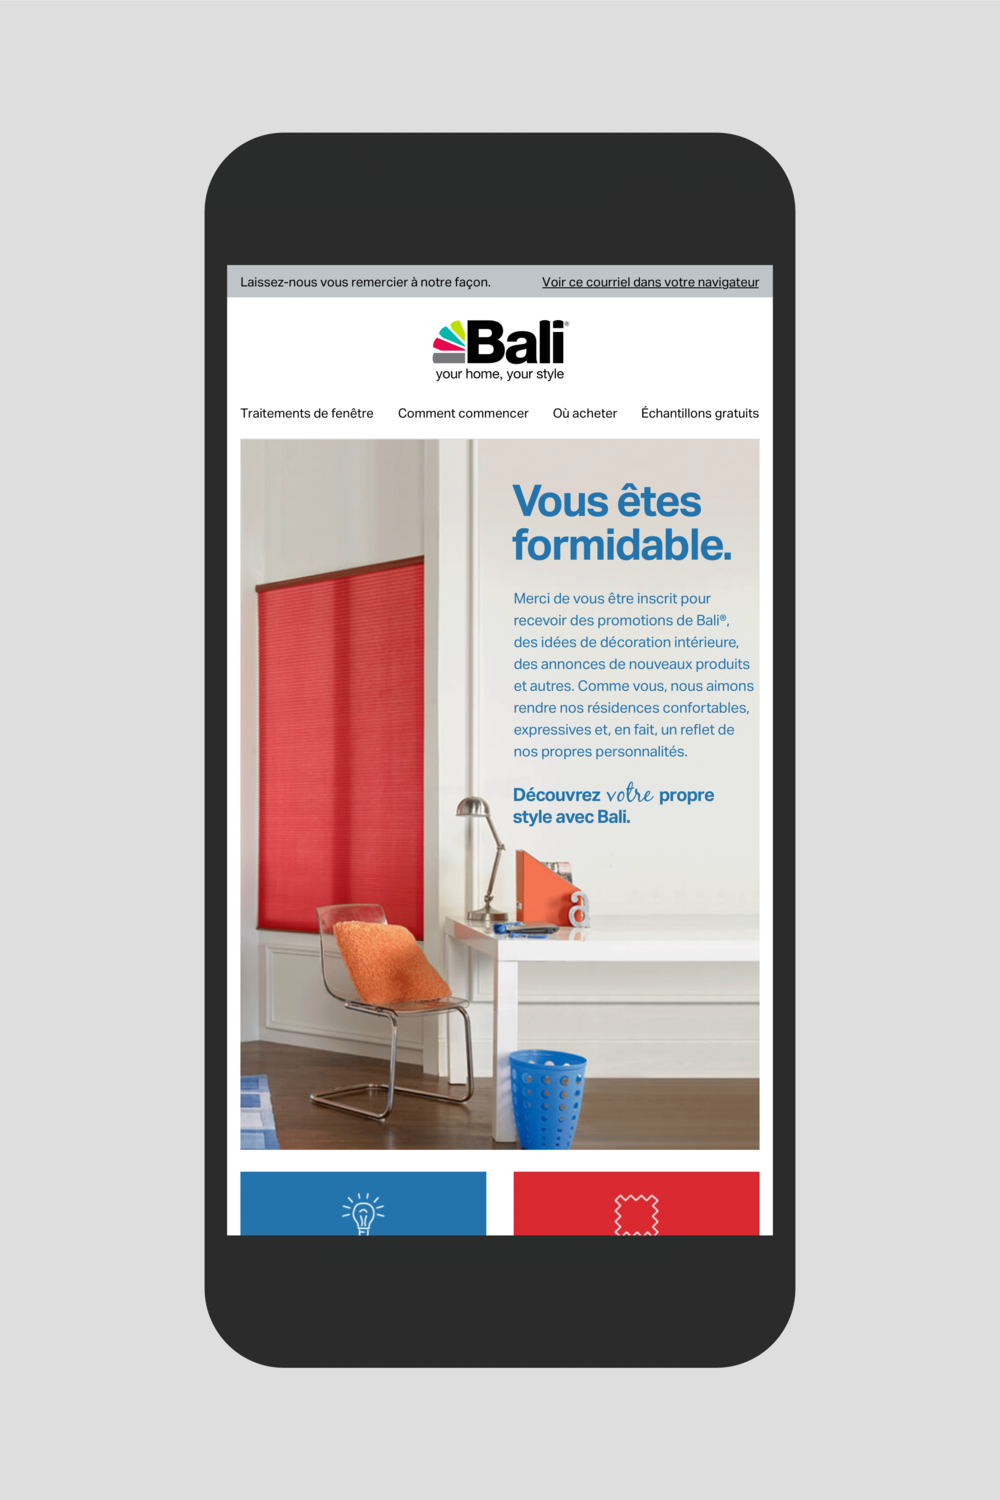 Bali email newsletter welcome email, in French